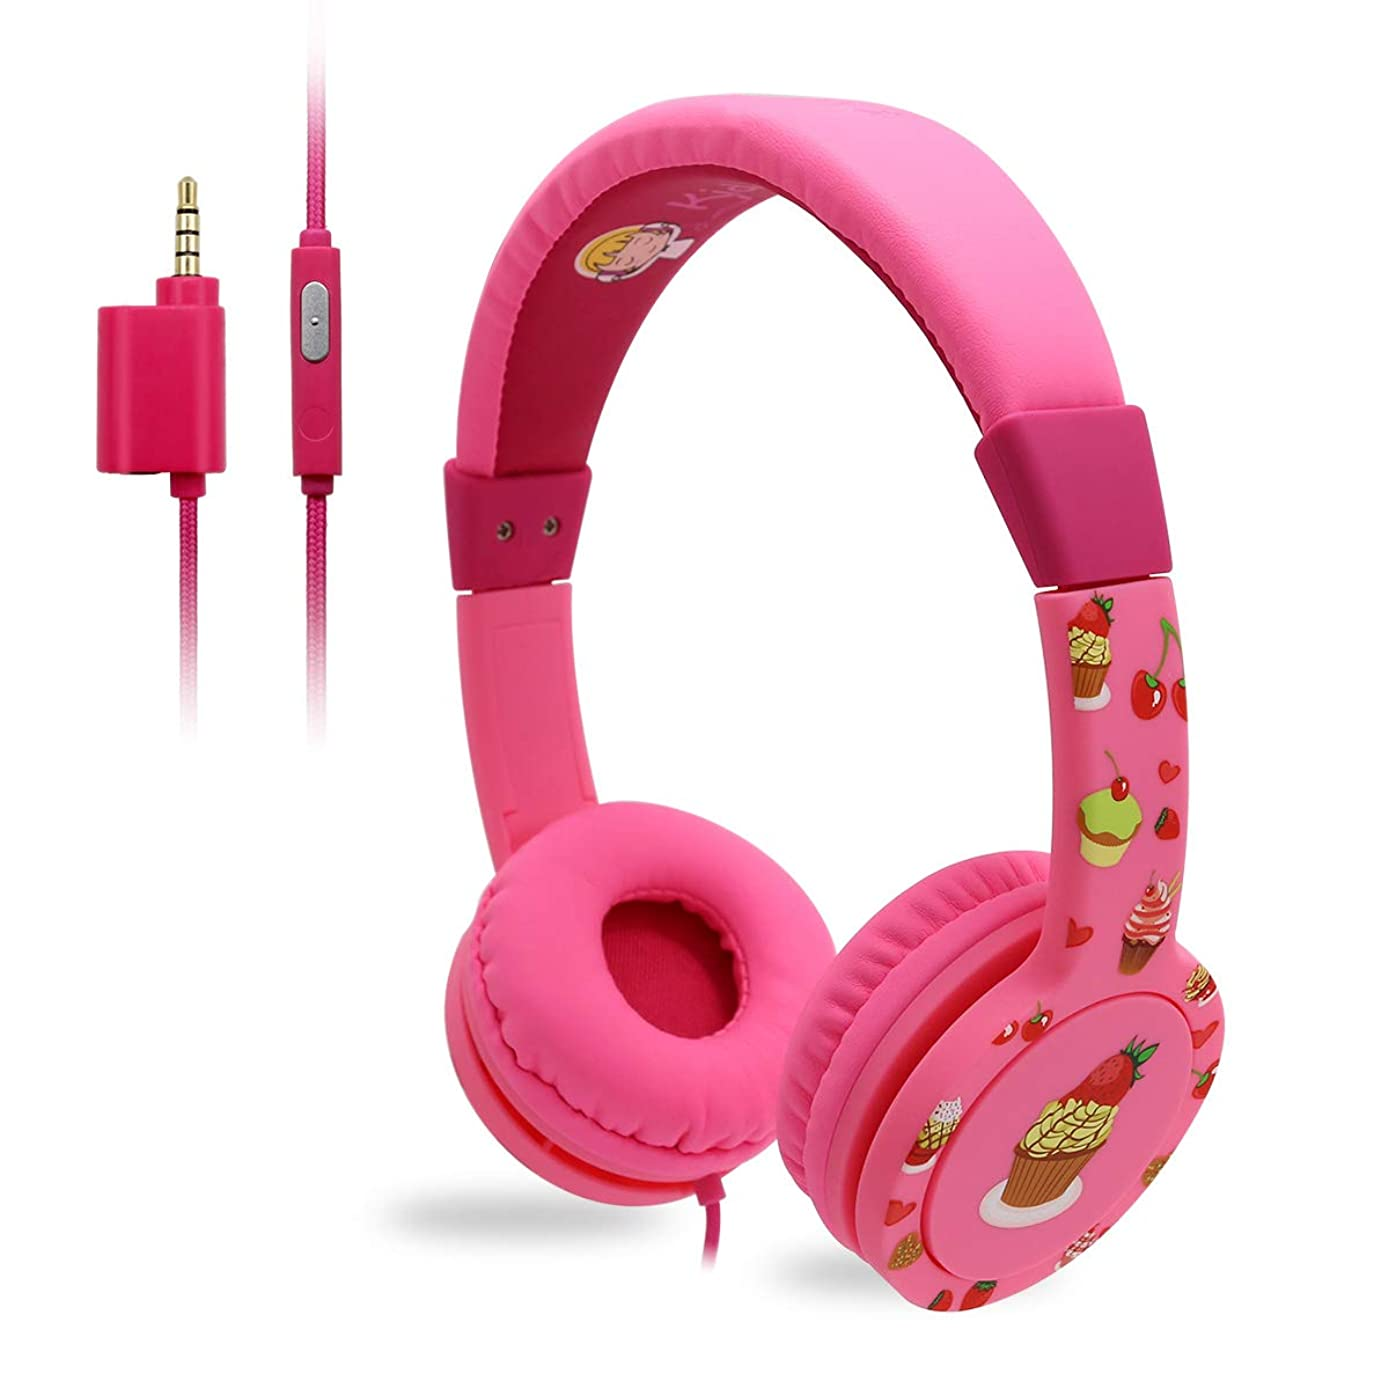 EasySMX Kids Headphones - Wired Headphones for Children Girls Boys, Adjustable Headband, Stereo Sound, in line Control,Share Port, 3.5mm Aux Jack, Child-Friendly ABS, 85dB Volume Limited - Pink